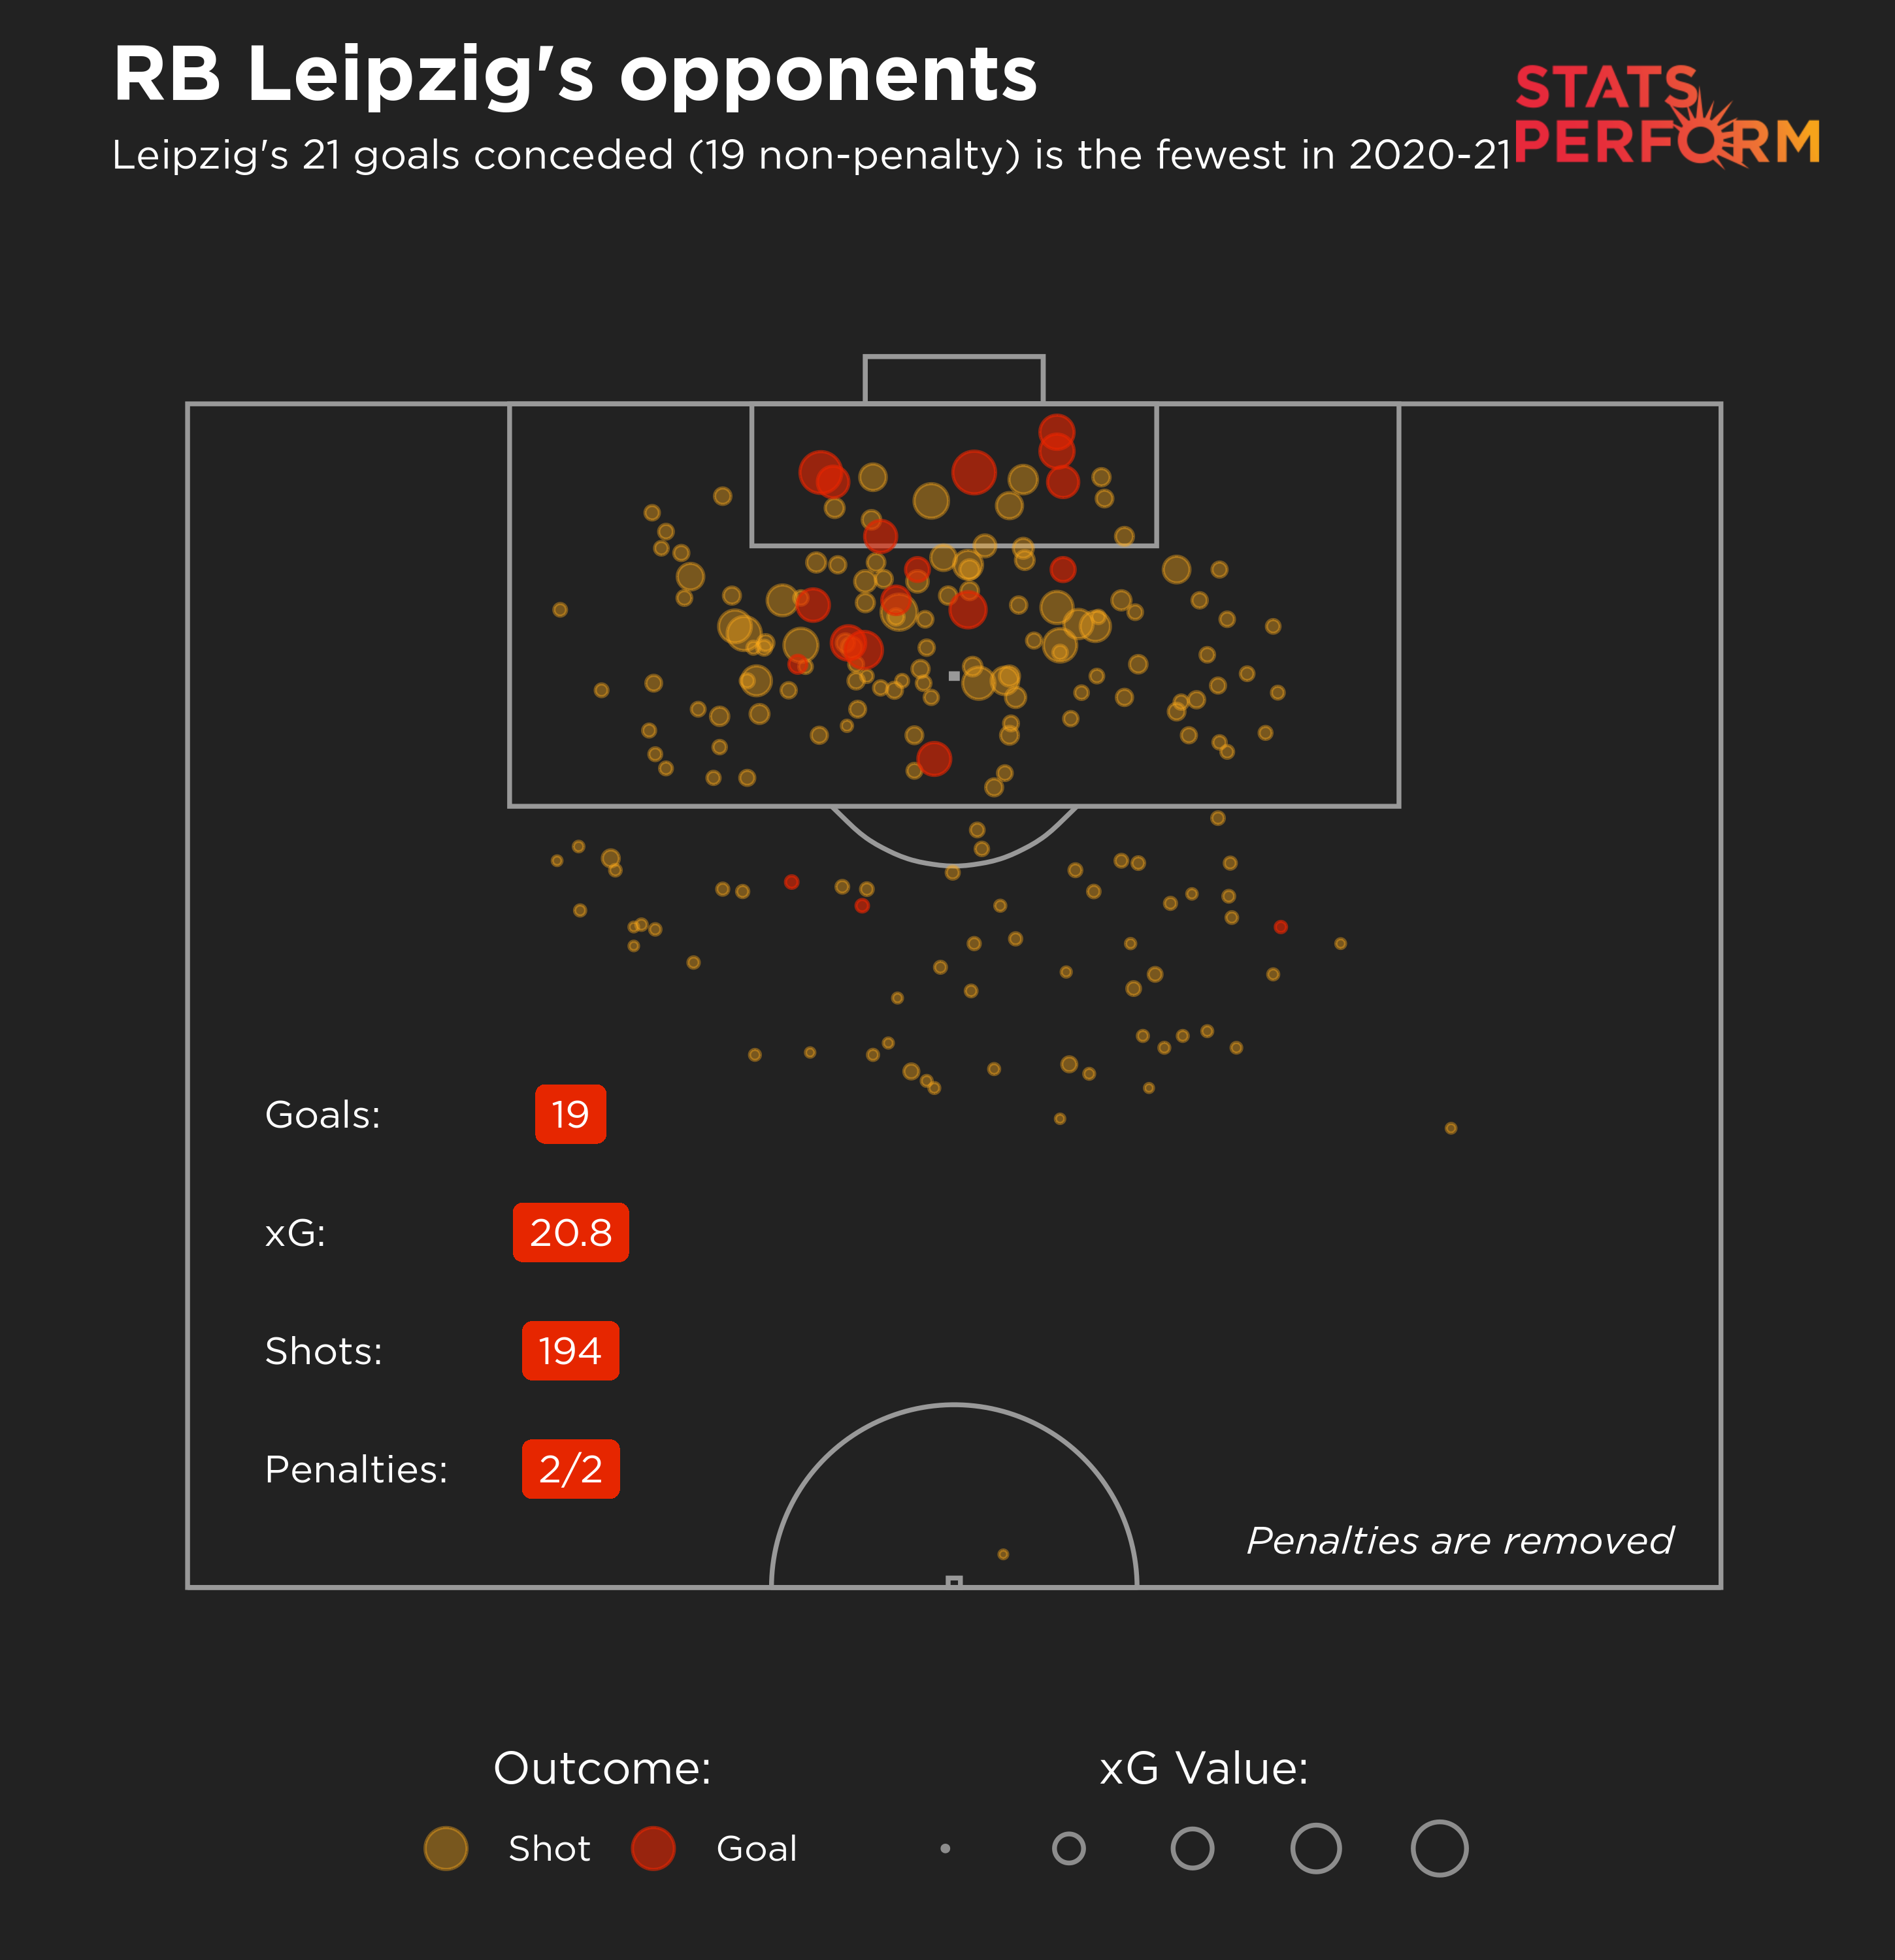 RB Leipzig have the best defensive record in the Bundesliga this season